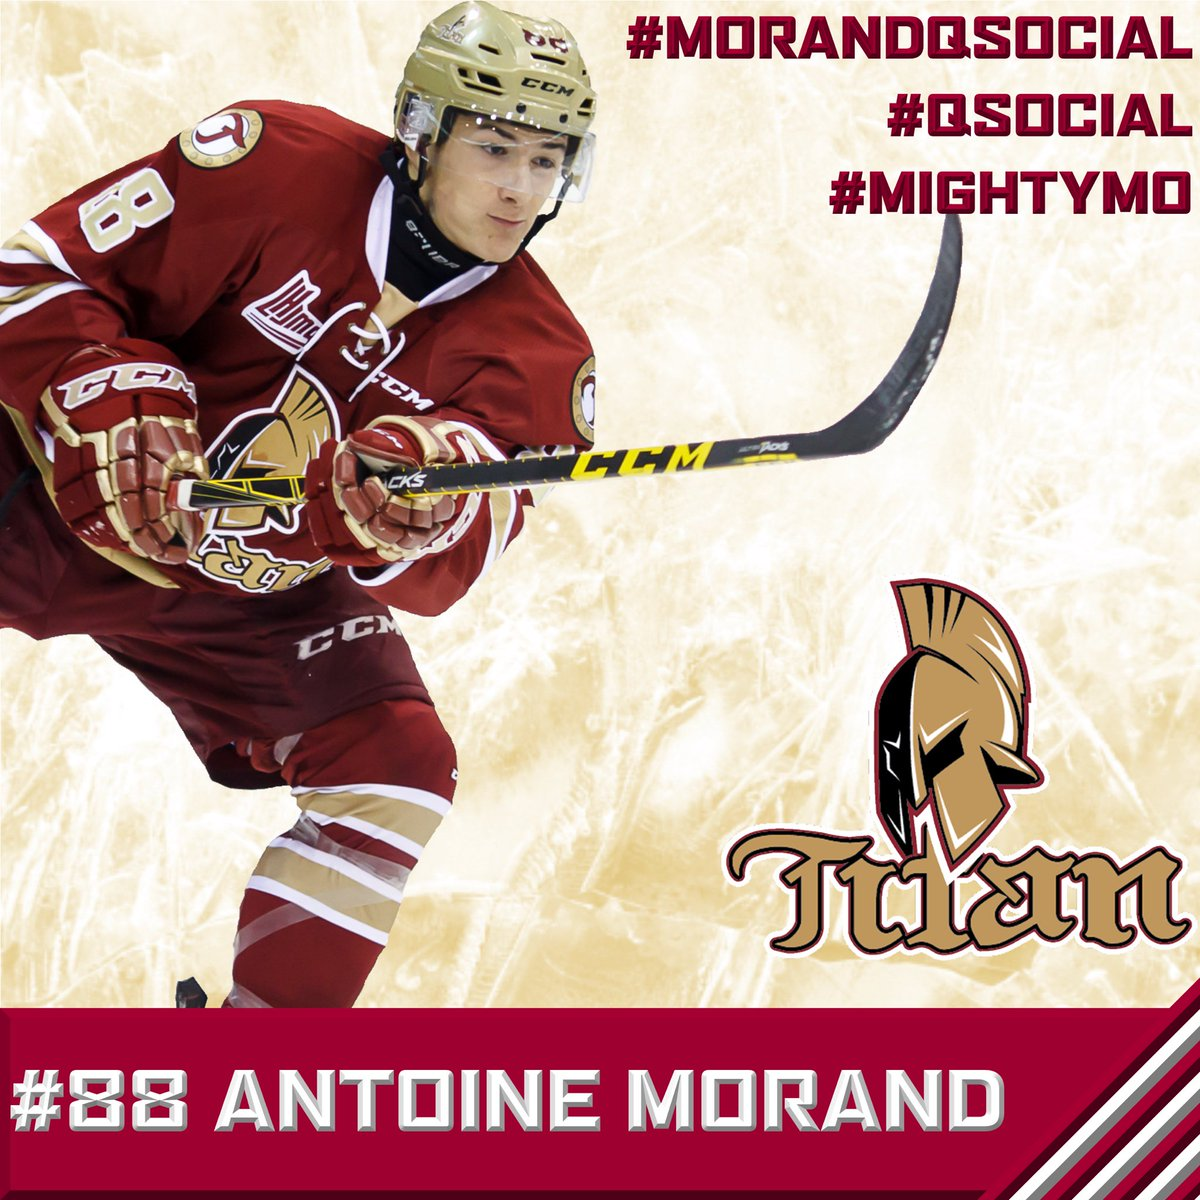 #MorandQSocial Every RT of this counts as a vote for @antoinemorand18 towards the Social Media Star of the Year! https://t.co/ejQm0eCf6d